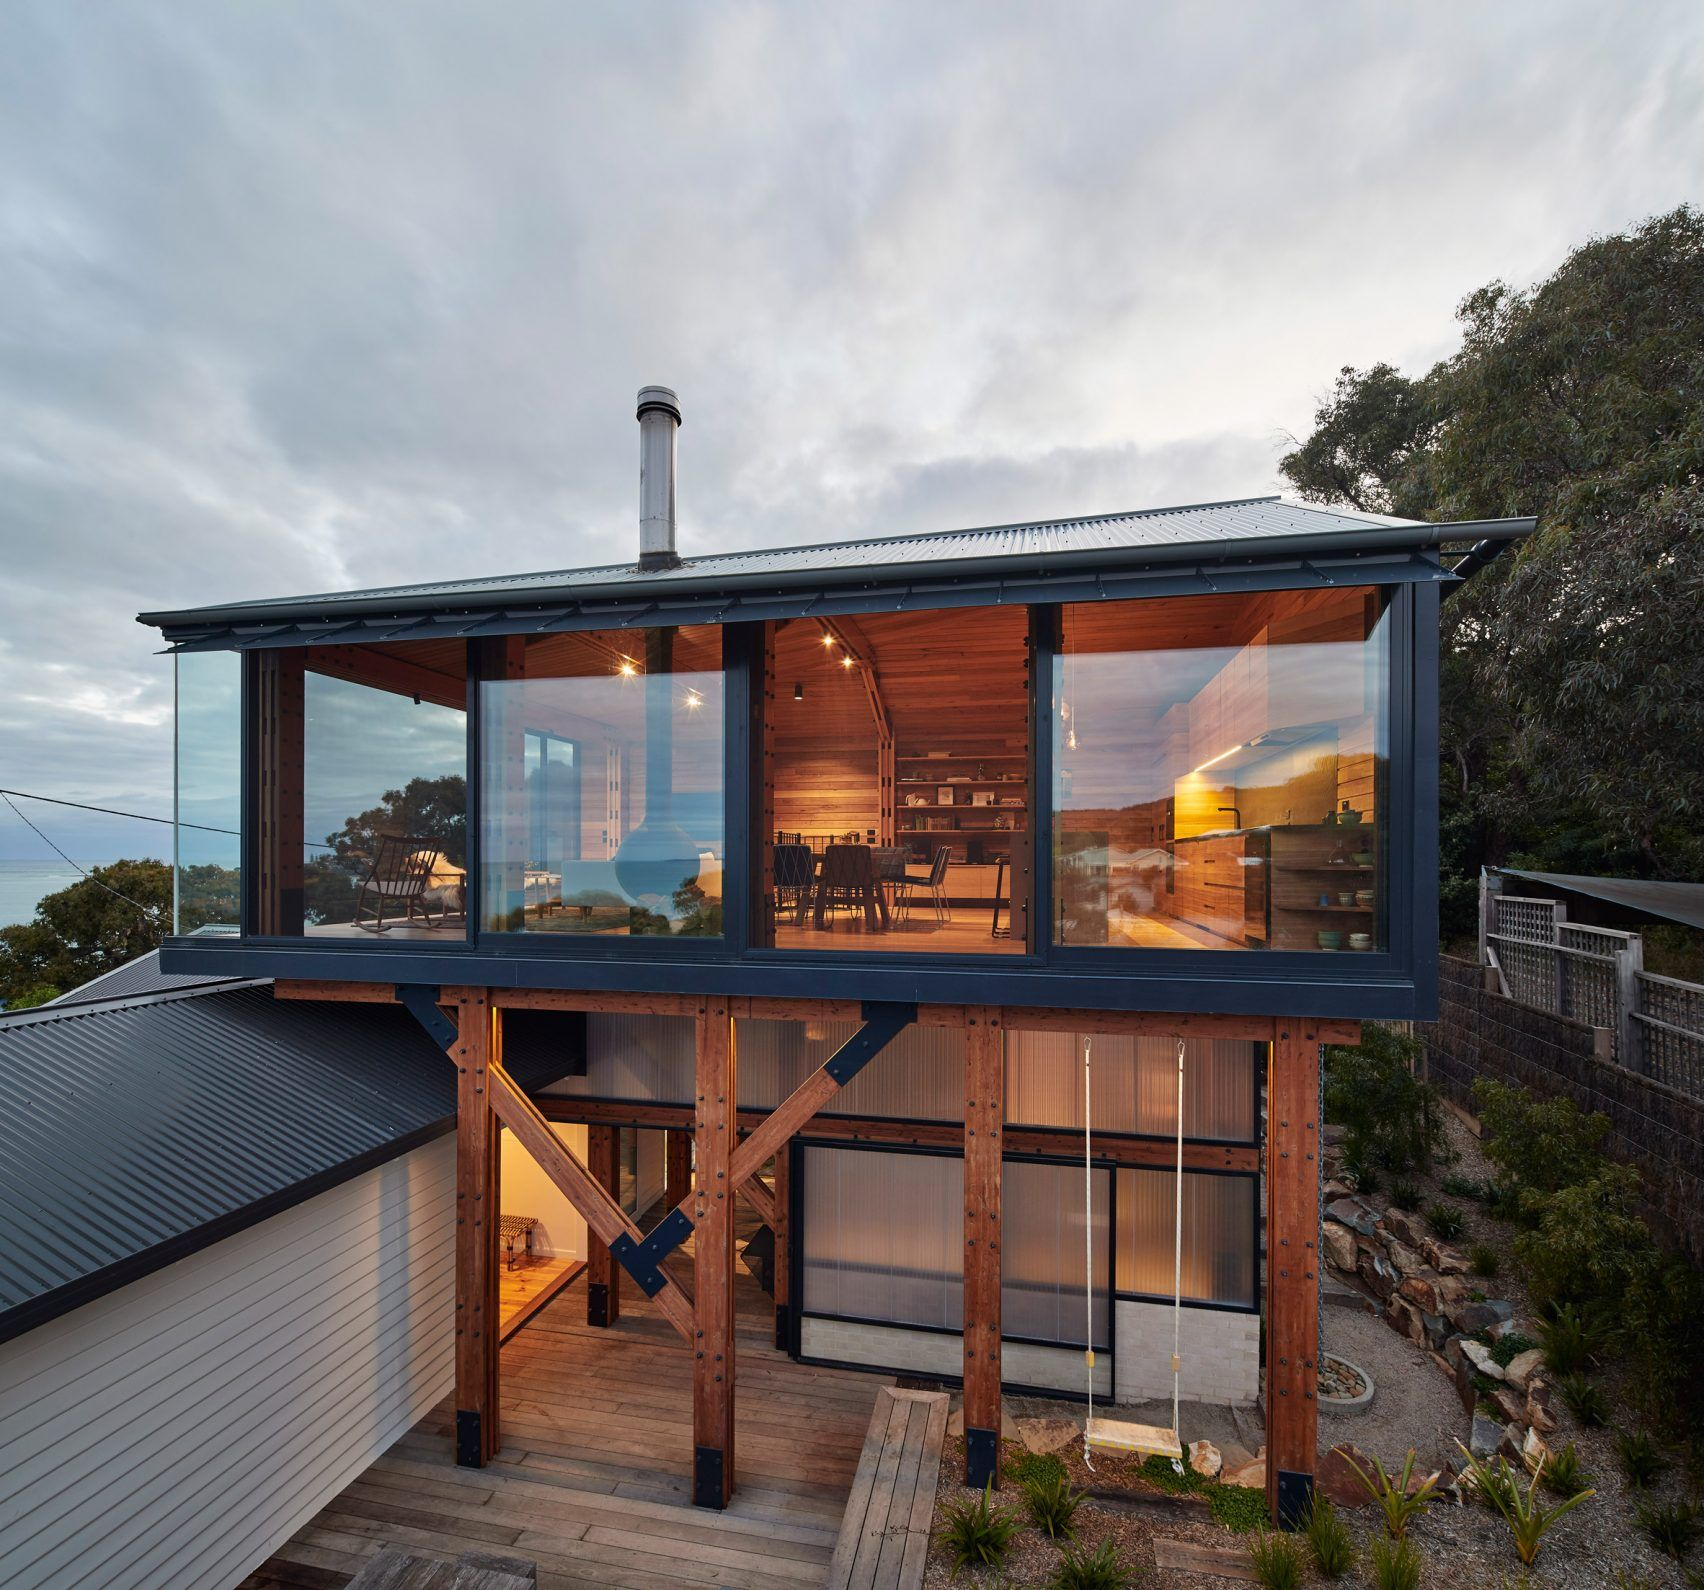 The Dorman House By Austin Maynard Architects In Lorne, Australia Is An  Extension Of A Seaside Shack.